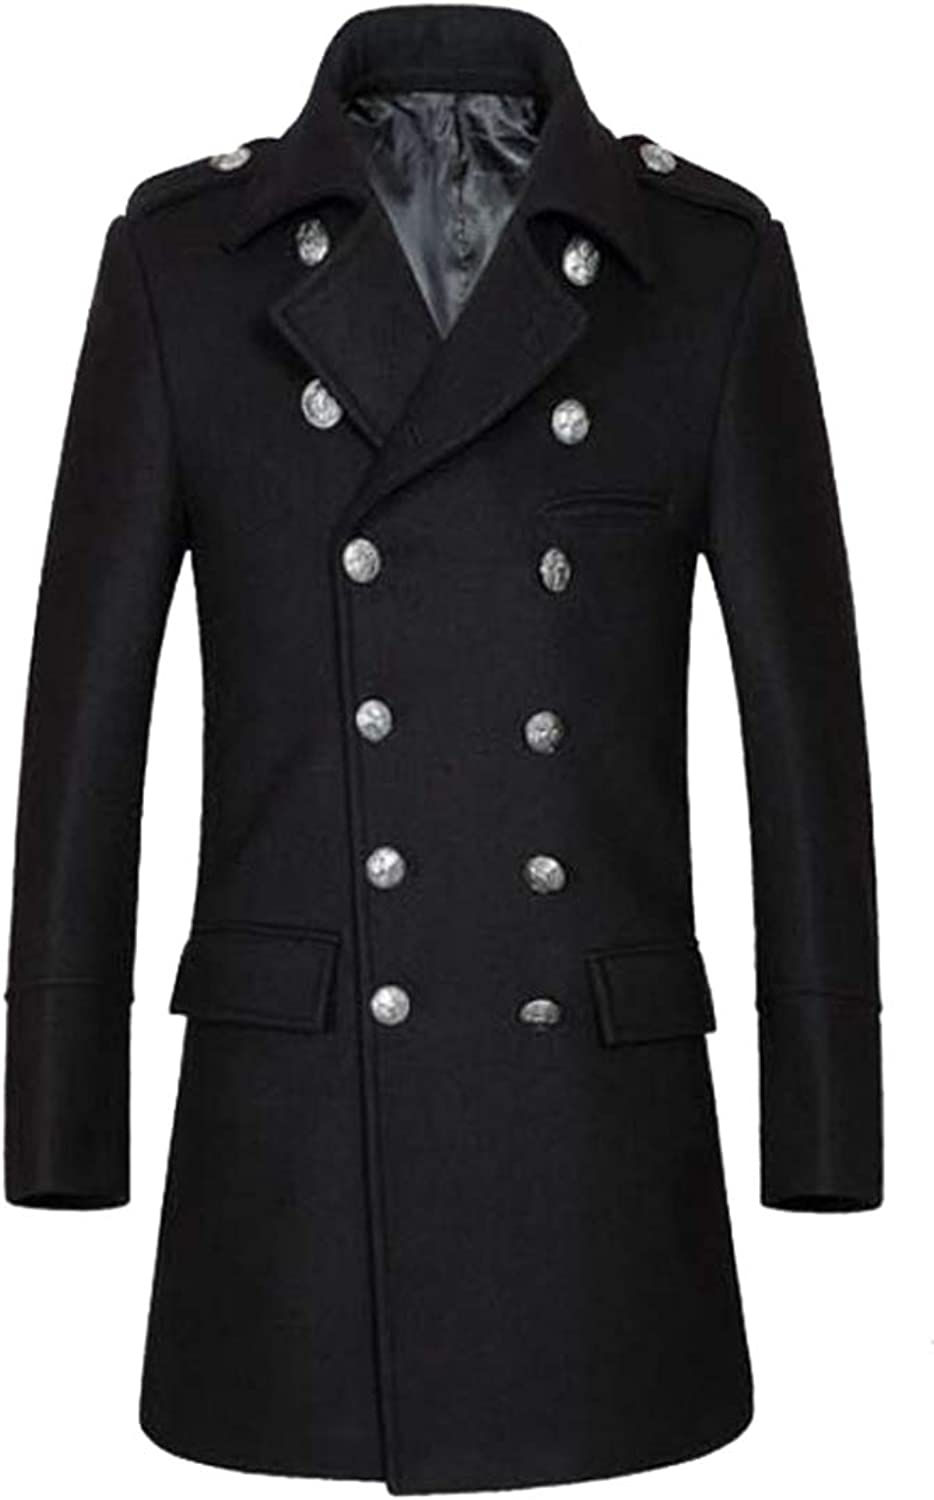 GAGA Men's Double Breasted Belted Long Jacket Trench Coat Overcoat Outwear